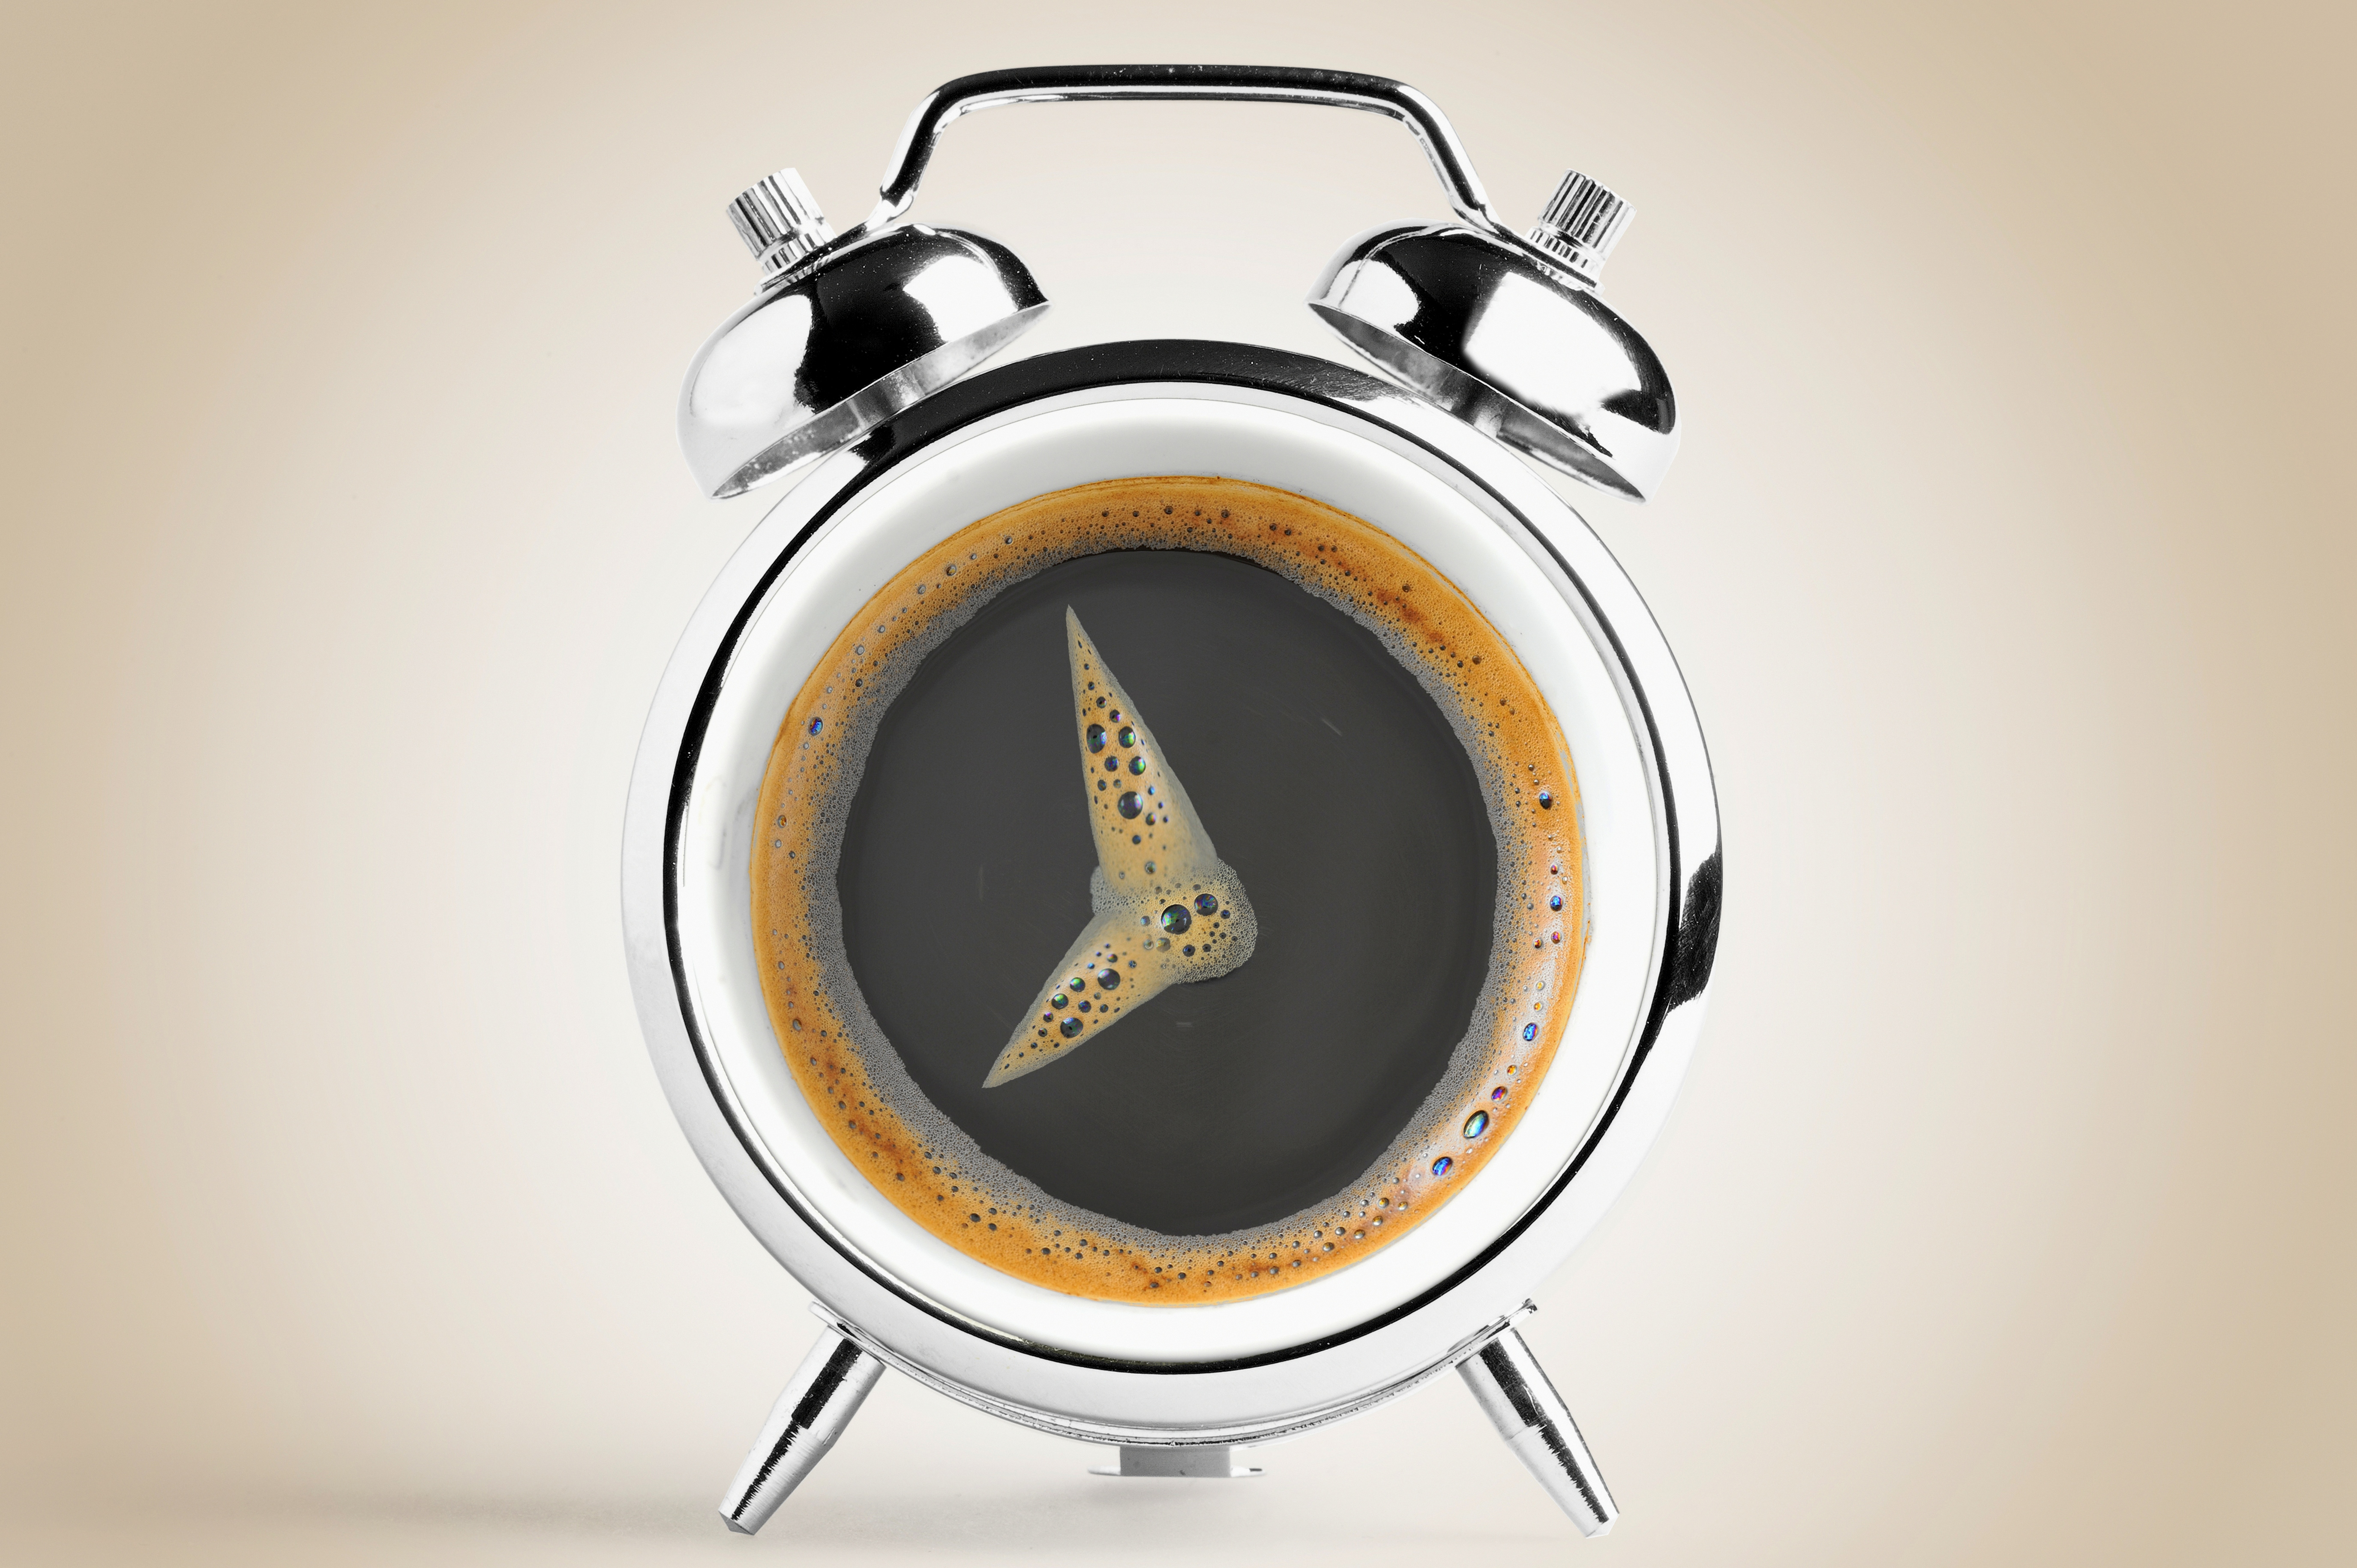 Good Morning Quotes Hd Wallpaper Download The Funny Coffee Clock Good Morning